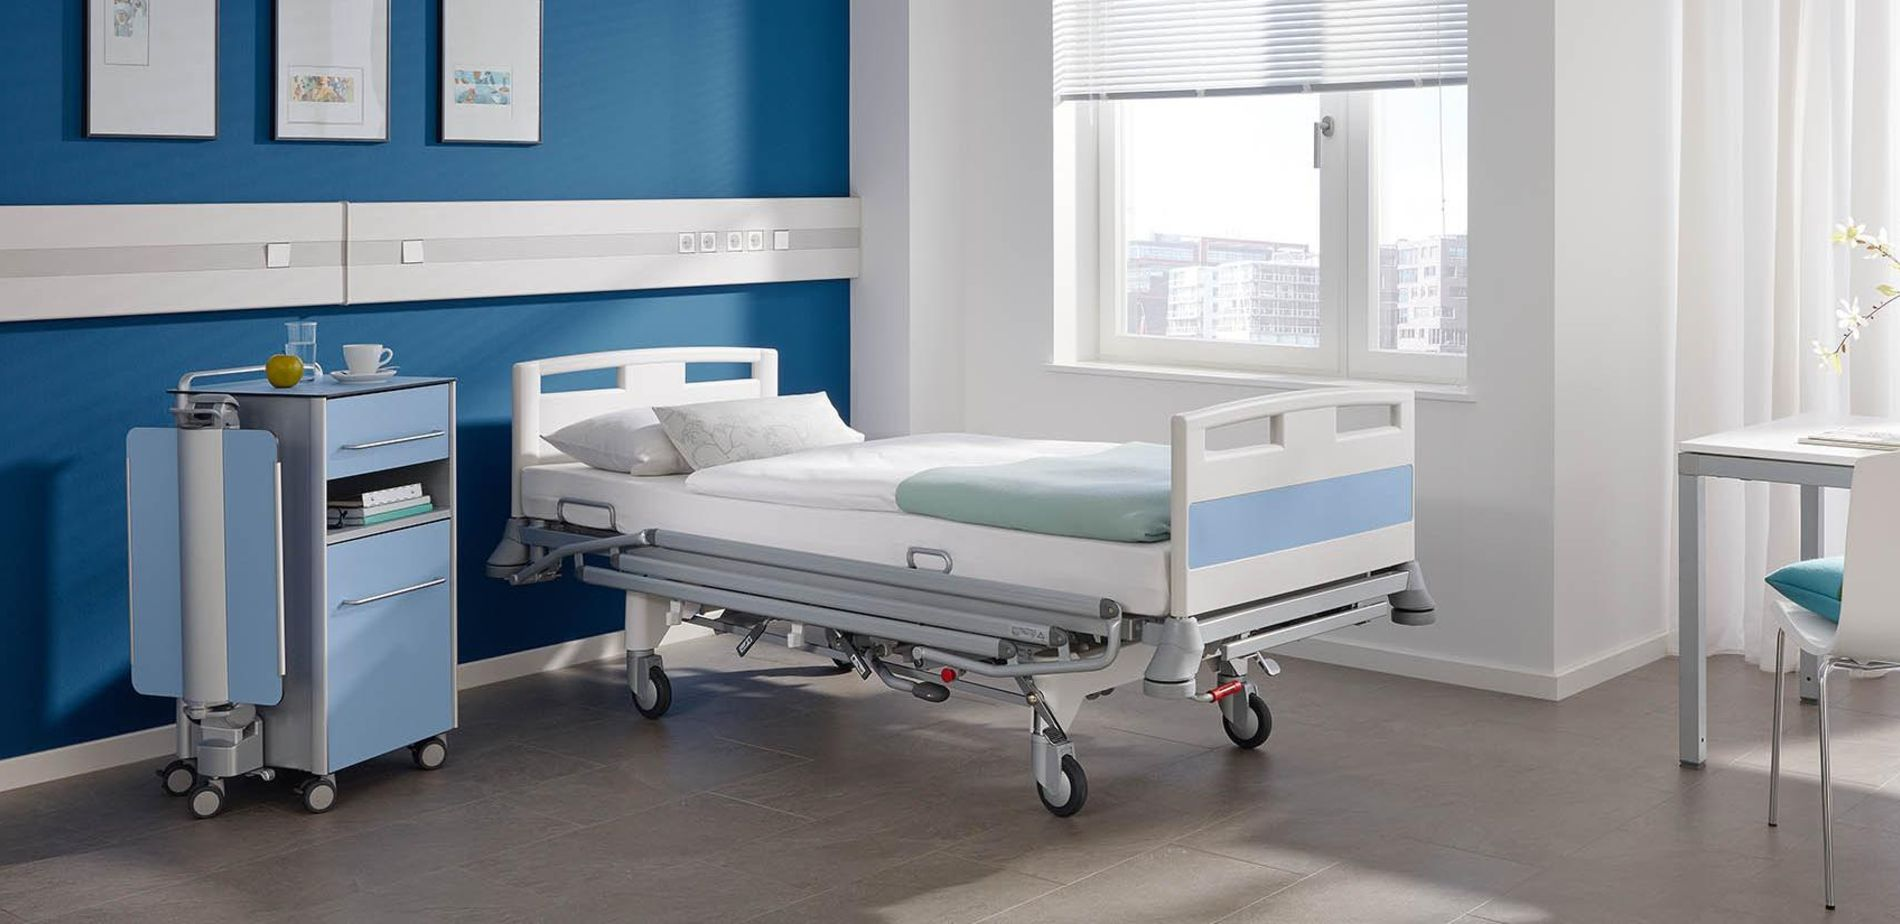 hosptial bed manufacturer,hospital bed for sale, hospital bed supplier